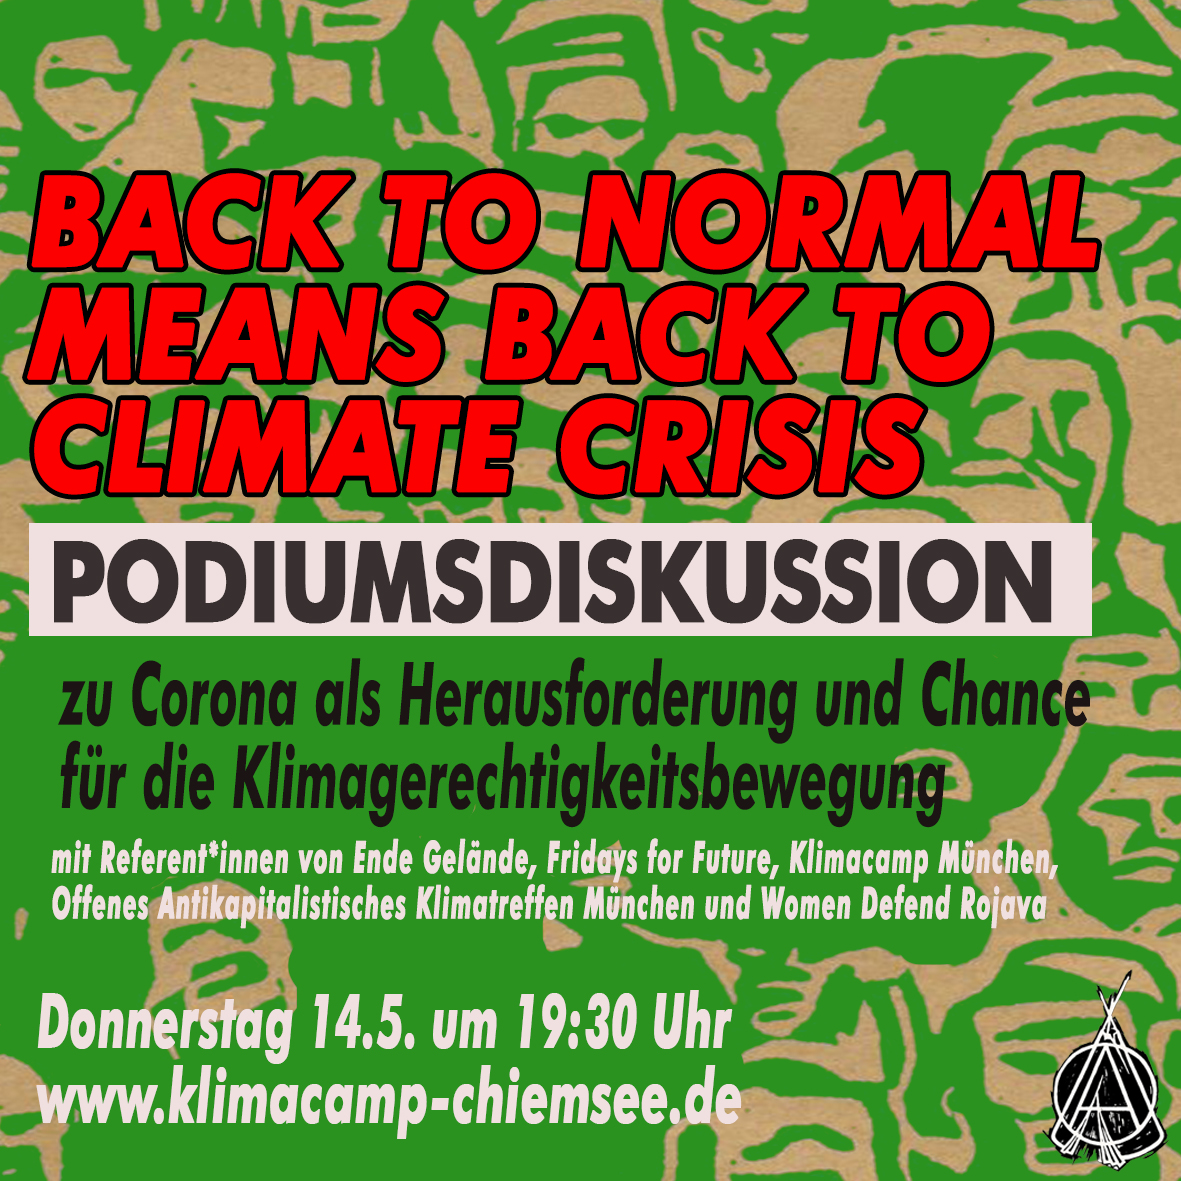 BACK TO NORMAL MEANS BACK TO CLIMATE CRISIS –  Podiumsdikussion